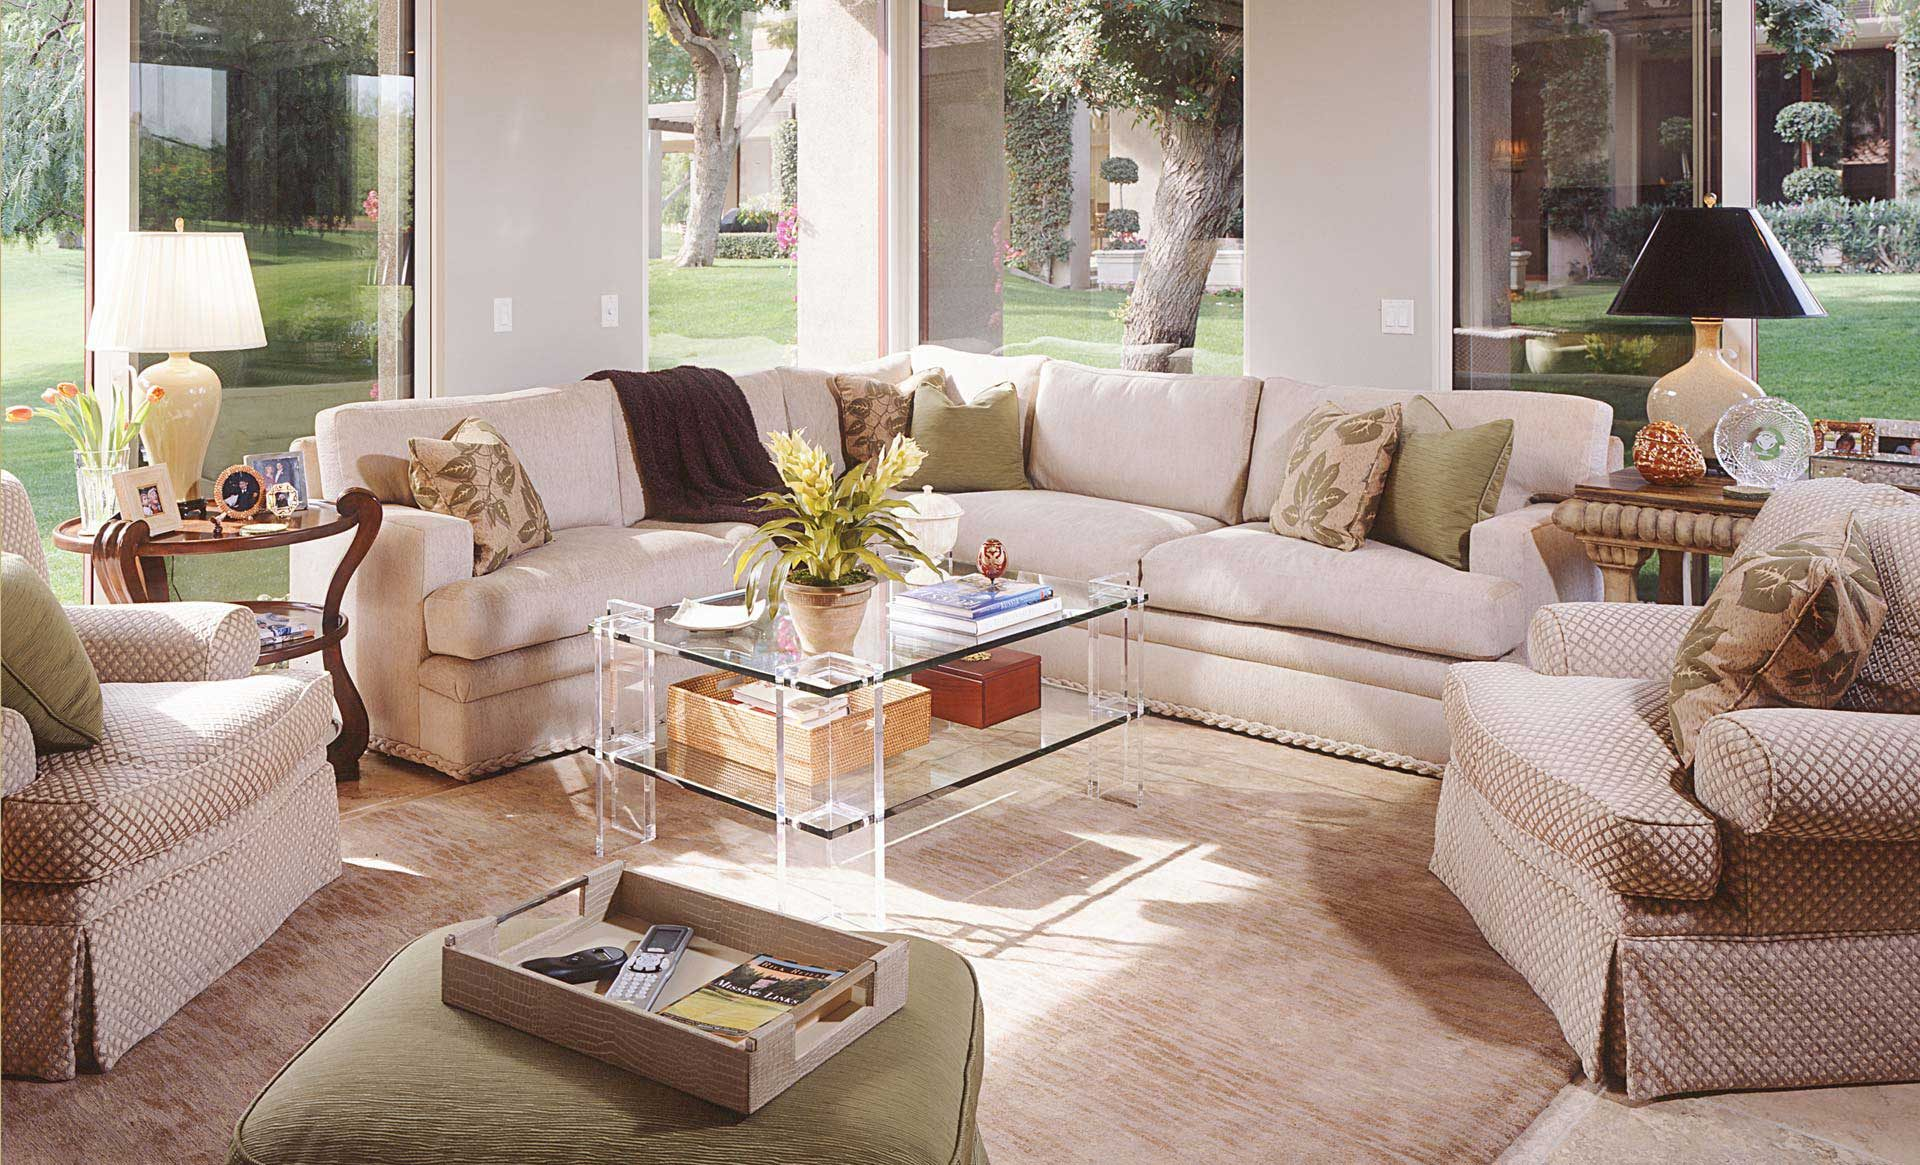 Tampa Interior Design transitional living room